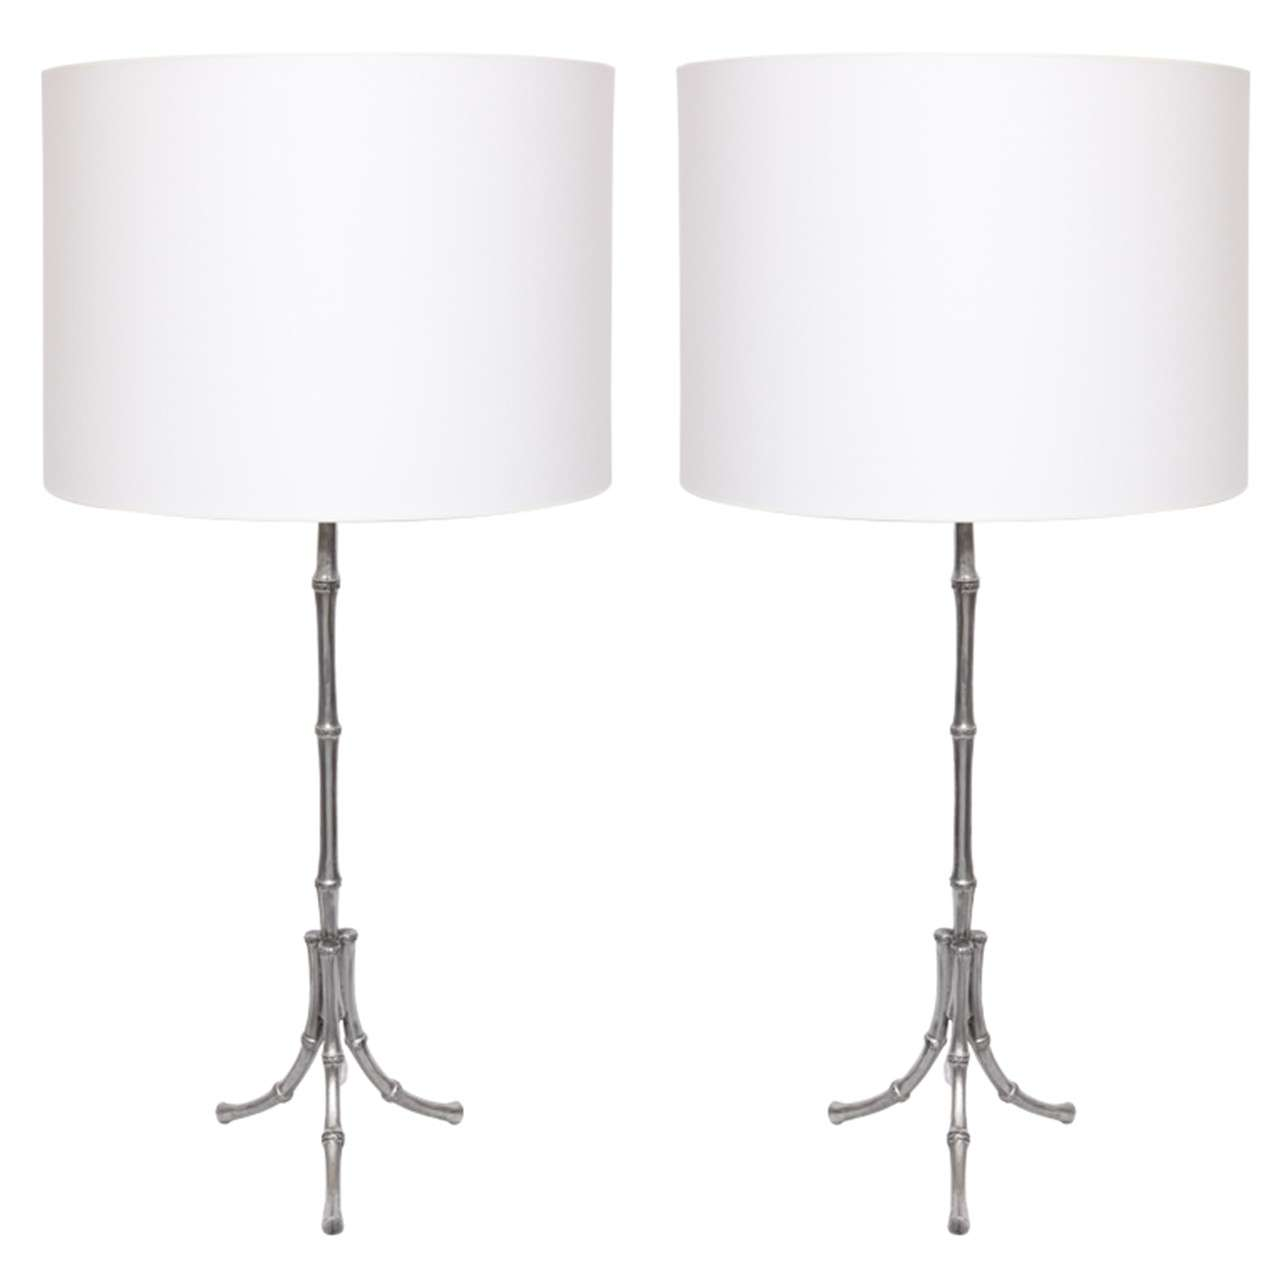 Pair of 1940s French Art Moderne Polished Metal Table Lamps